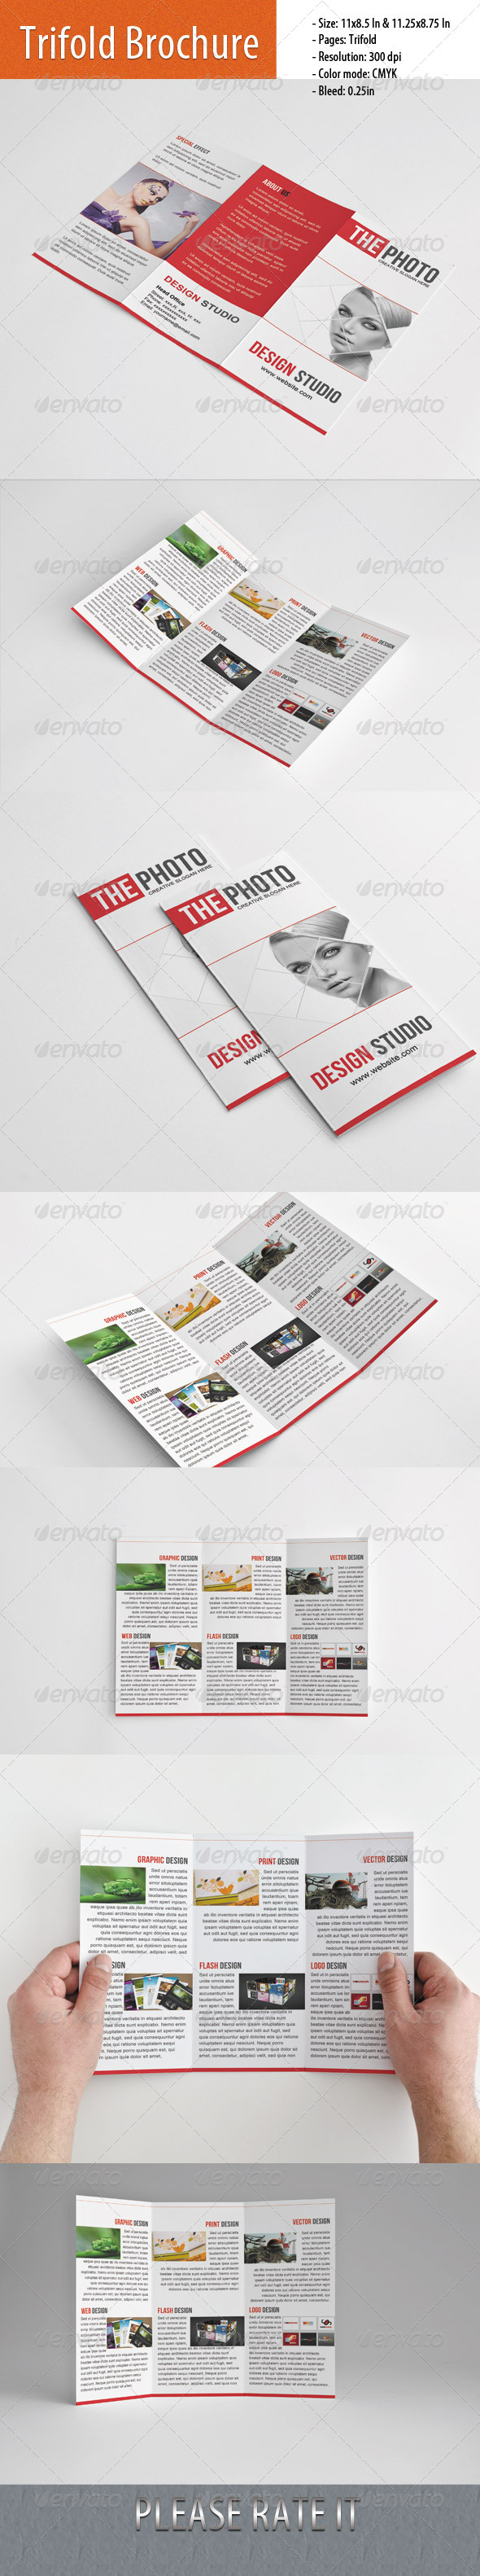 Trifold Brochure for Studio - Brochures Print Templates